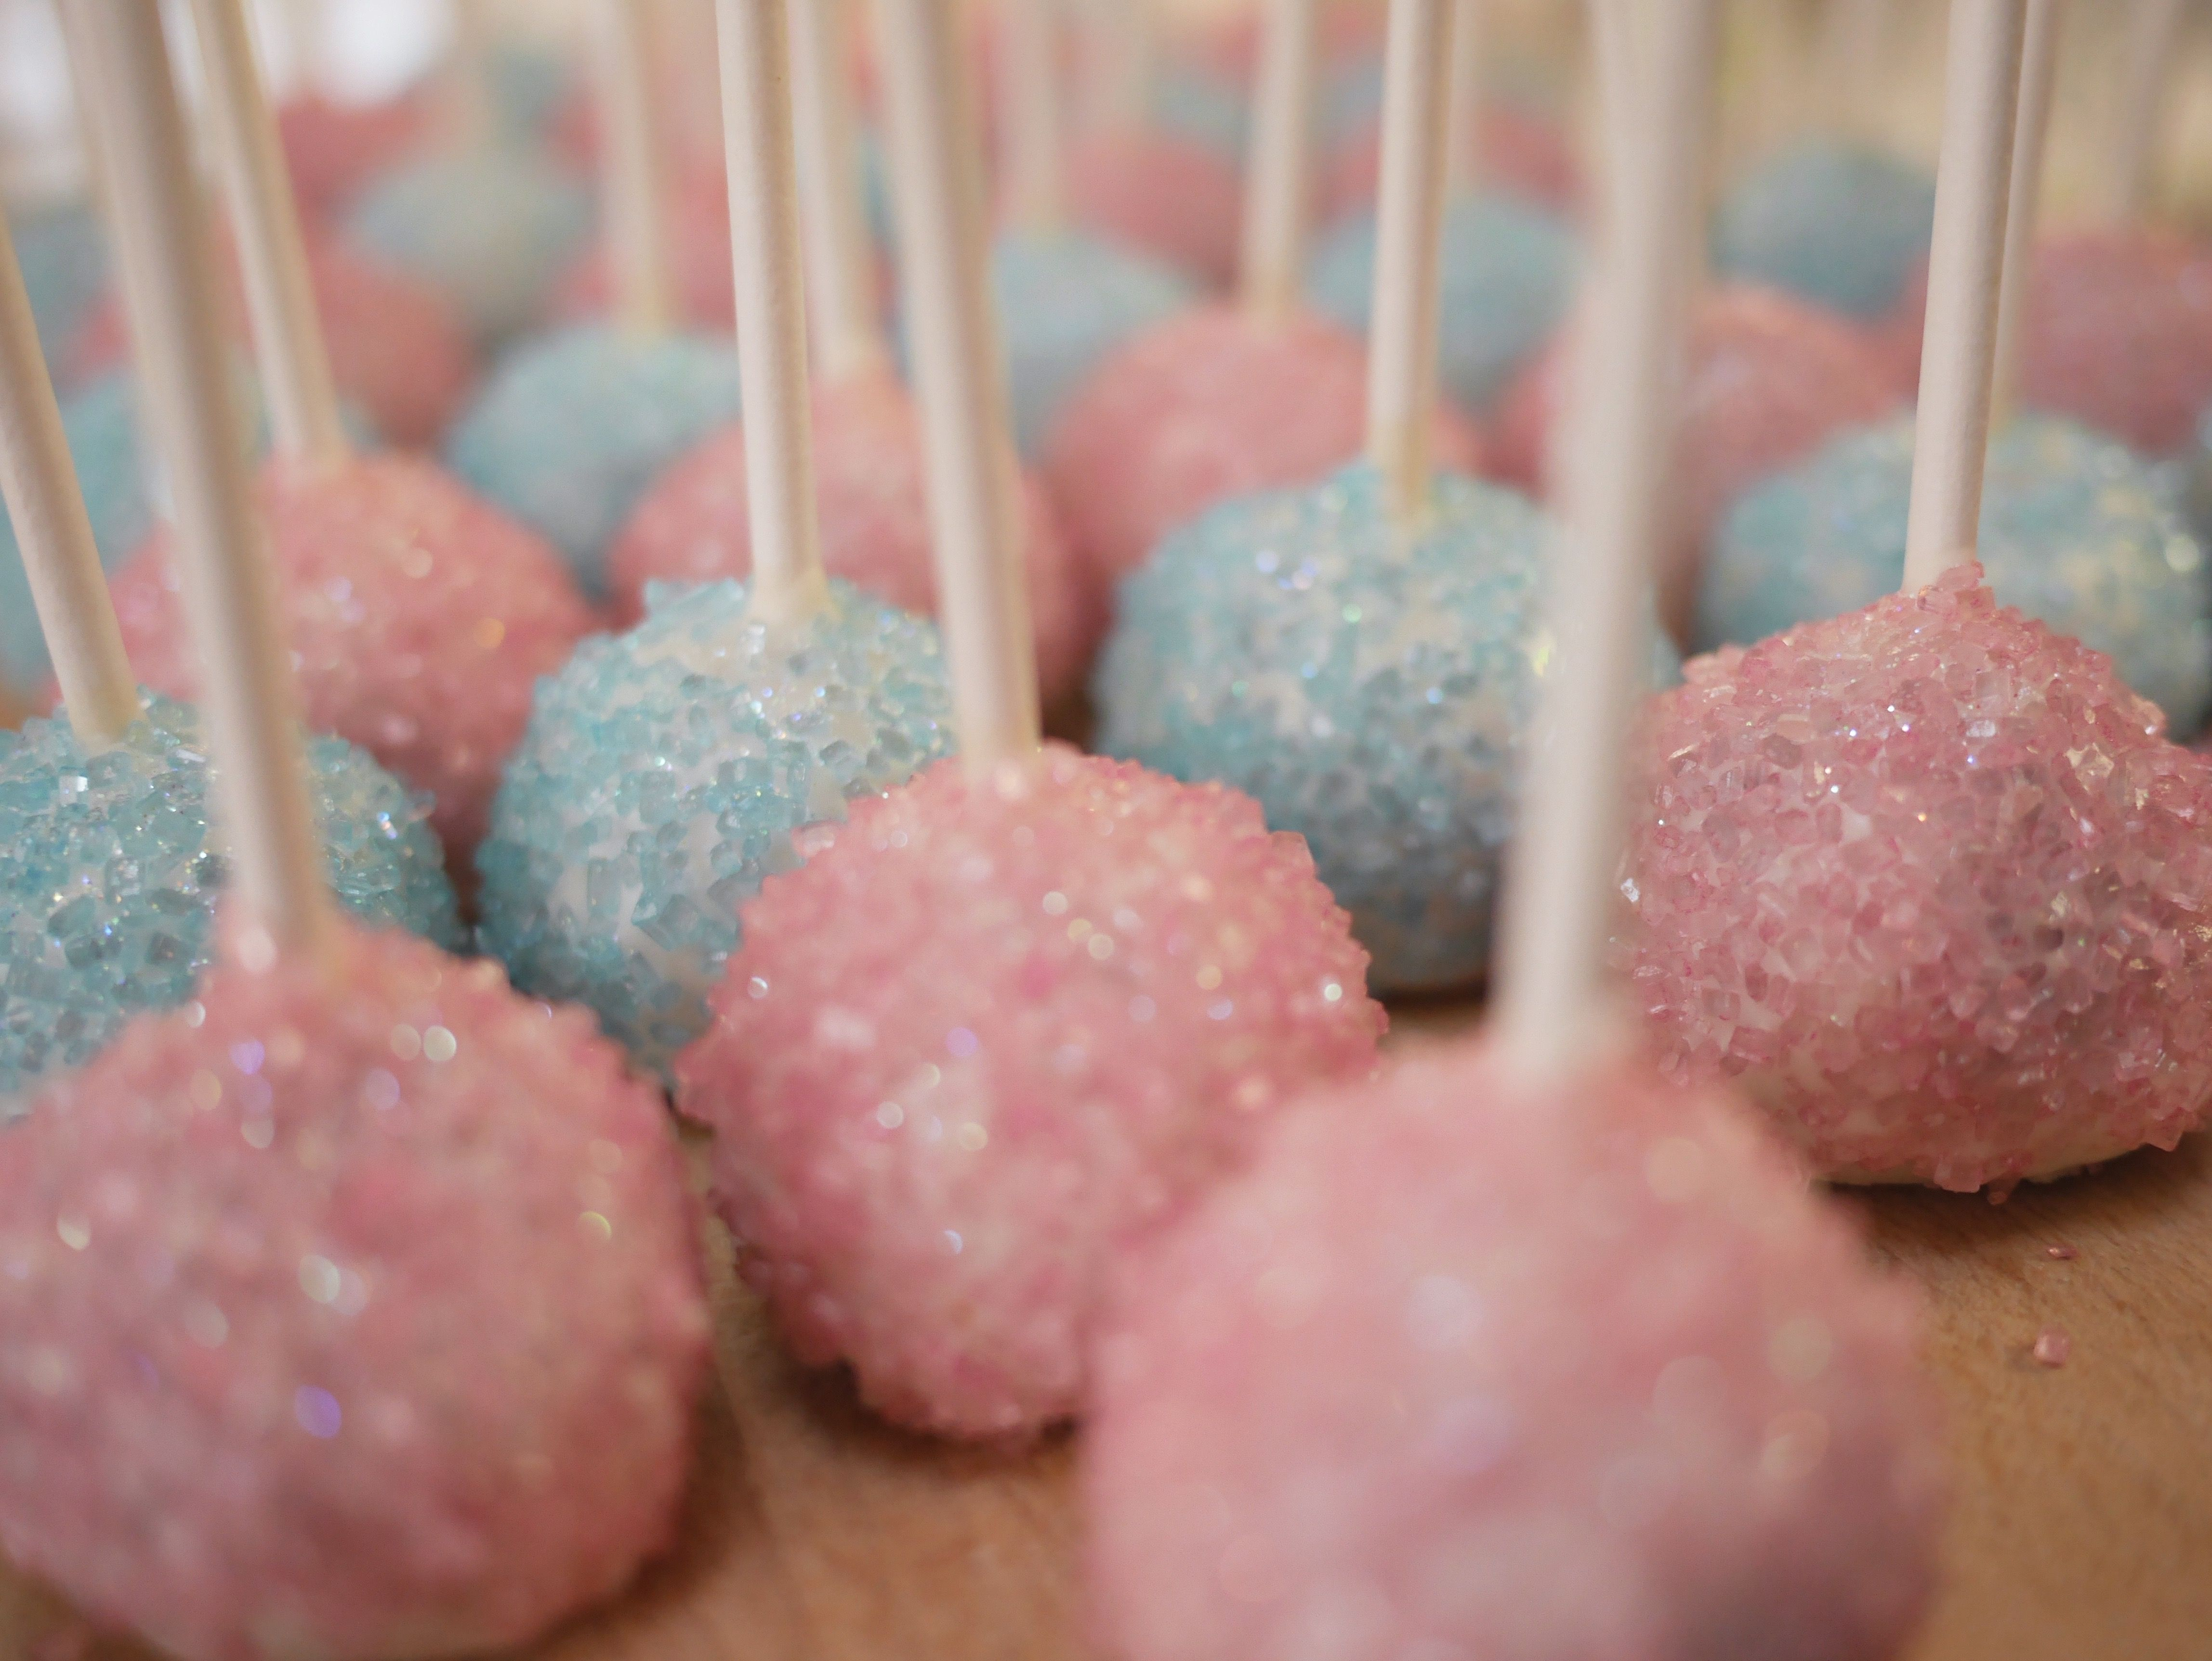 pantone color of the year 2016 rose quartz and bleu serenity pop cake party baby shower idea cute food weeding color baking brownies and colored sugar